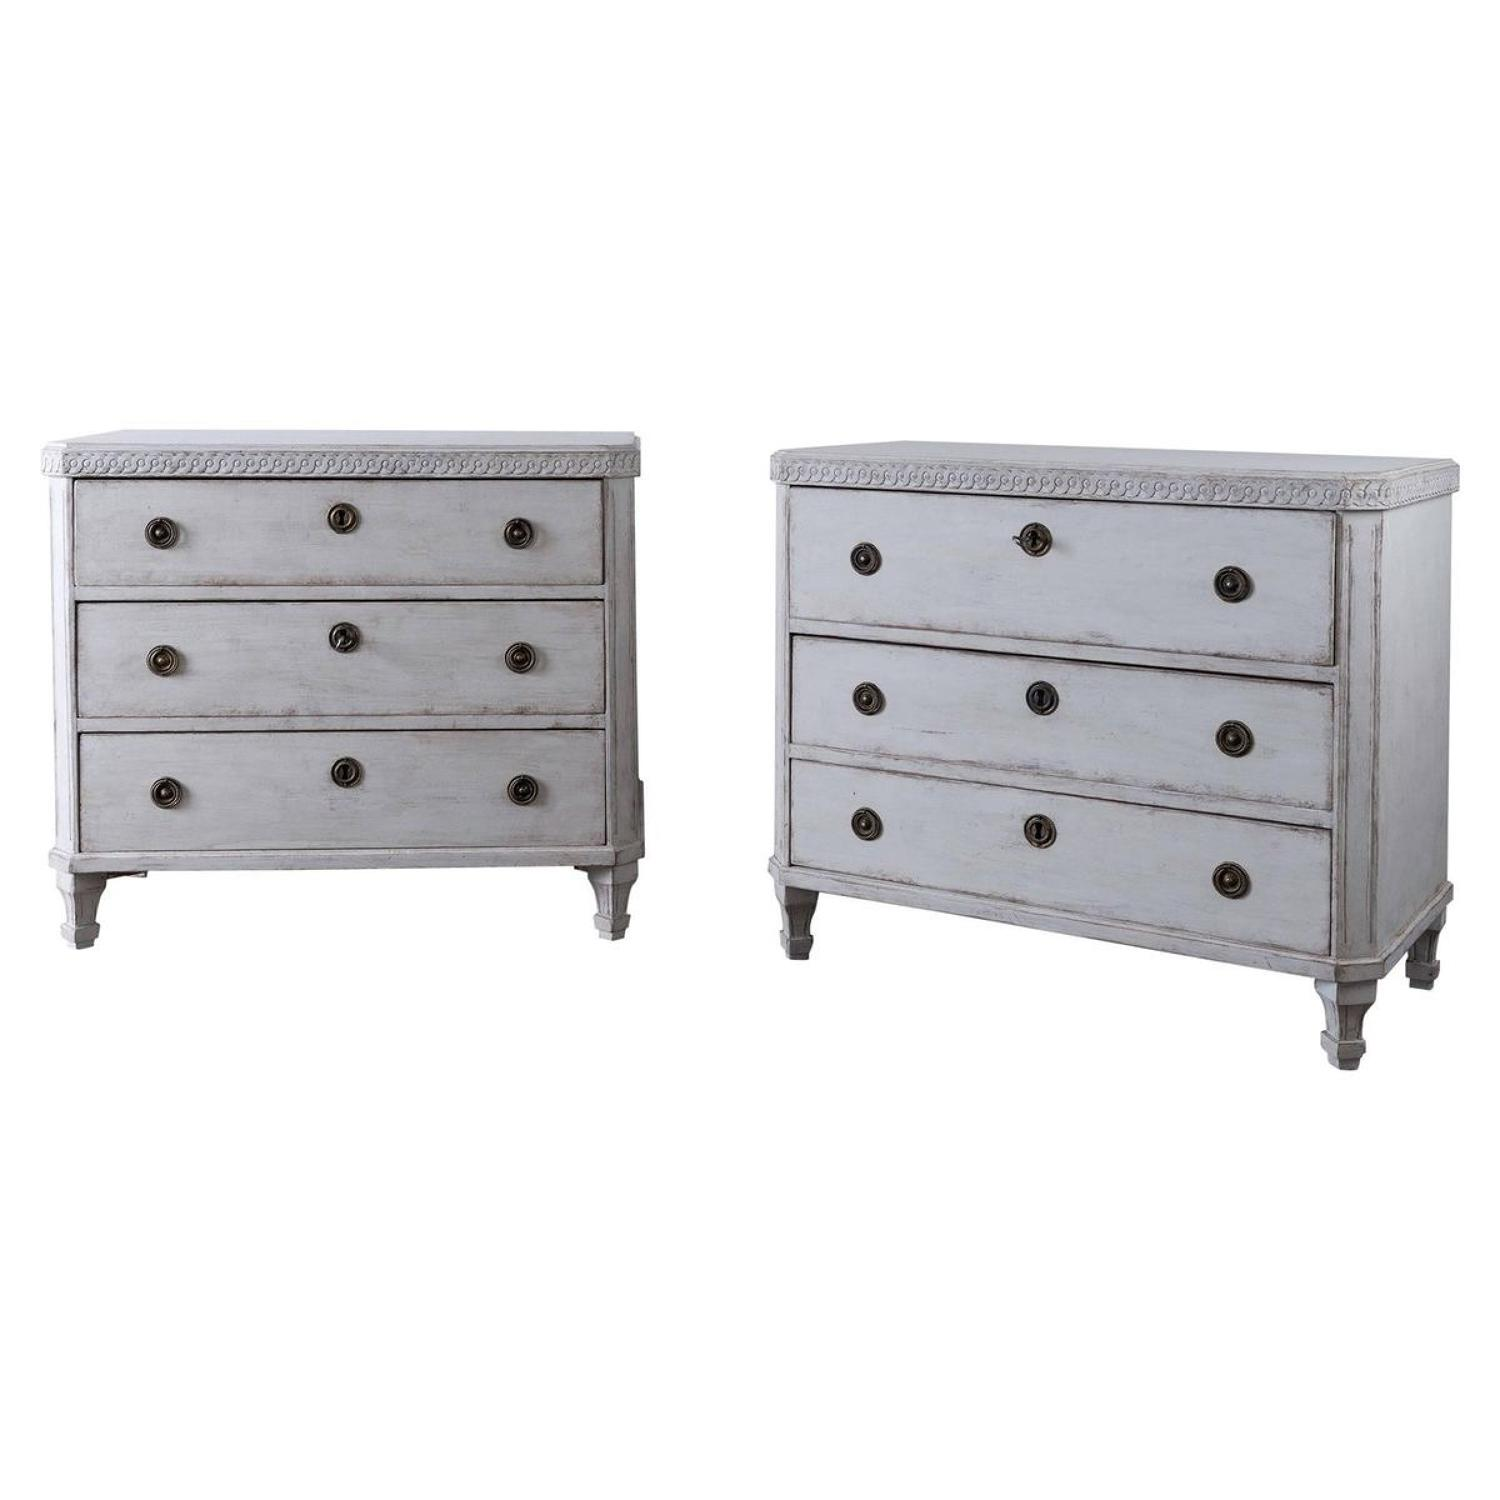 Pair of Elegant Gustavian Style 19th Century Chests of Drawers